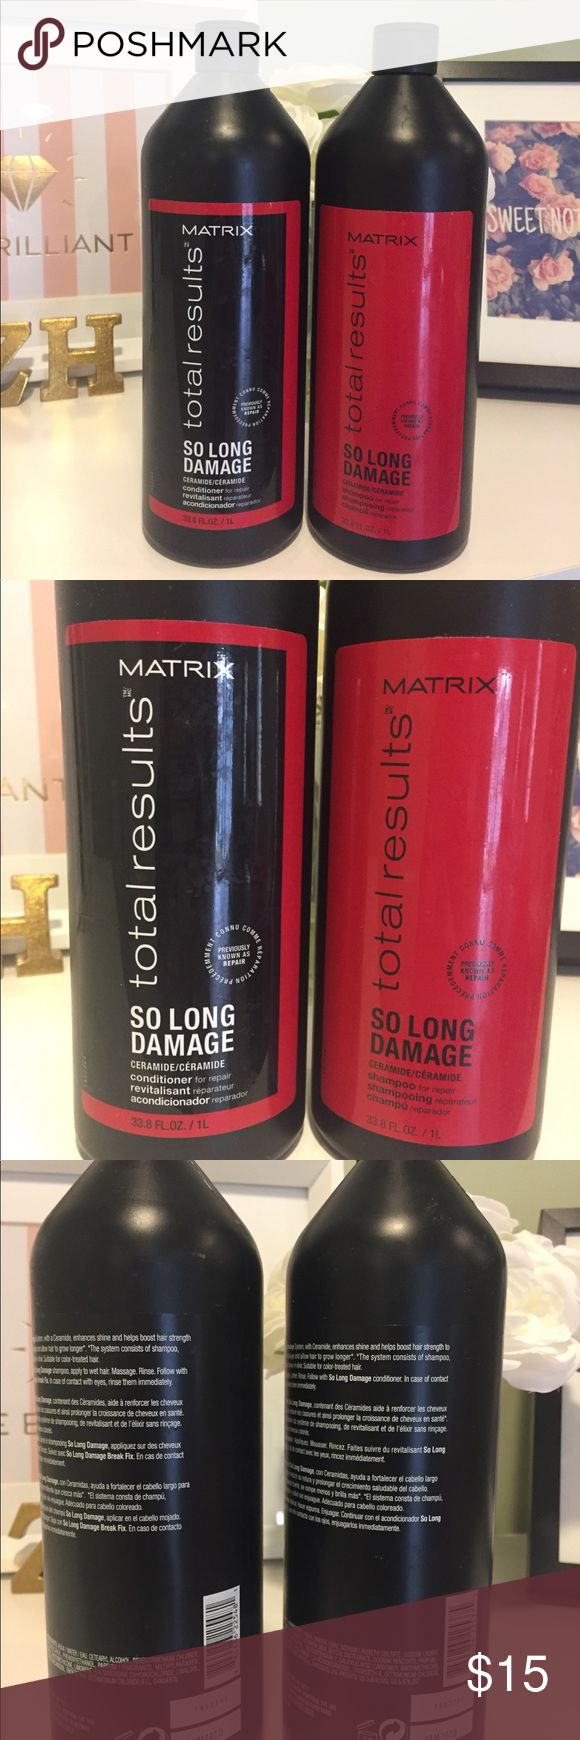 New MATRIX Total Repair Set New MATRIX total results so long damage shampoo & conditioner.  33.8 FL OZ both bottles full  Smells great - awesome deal!   Purchased each bottle for $20 Matrix Other